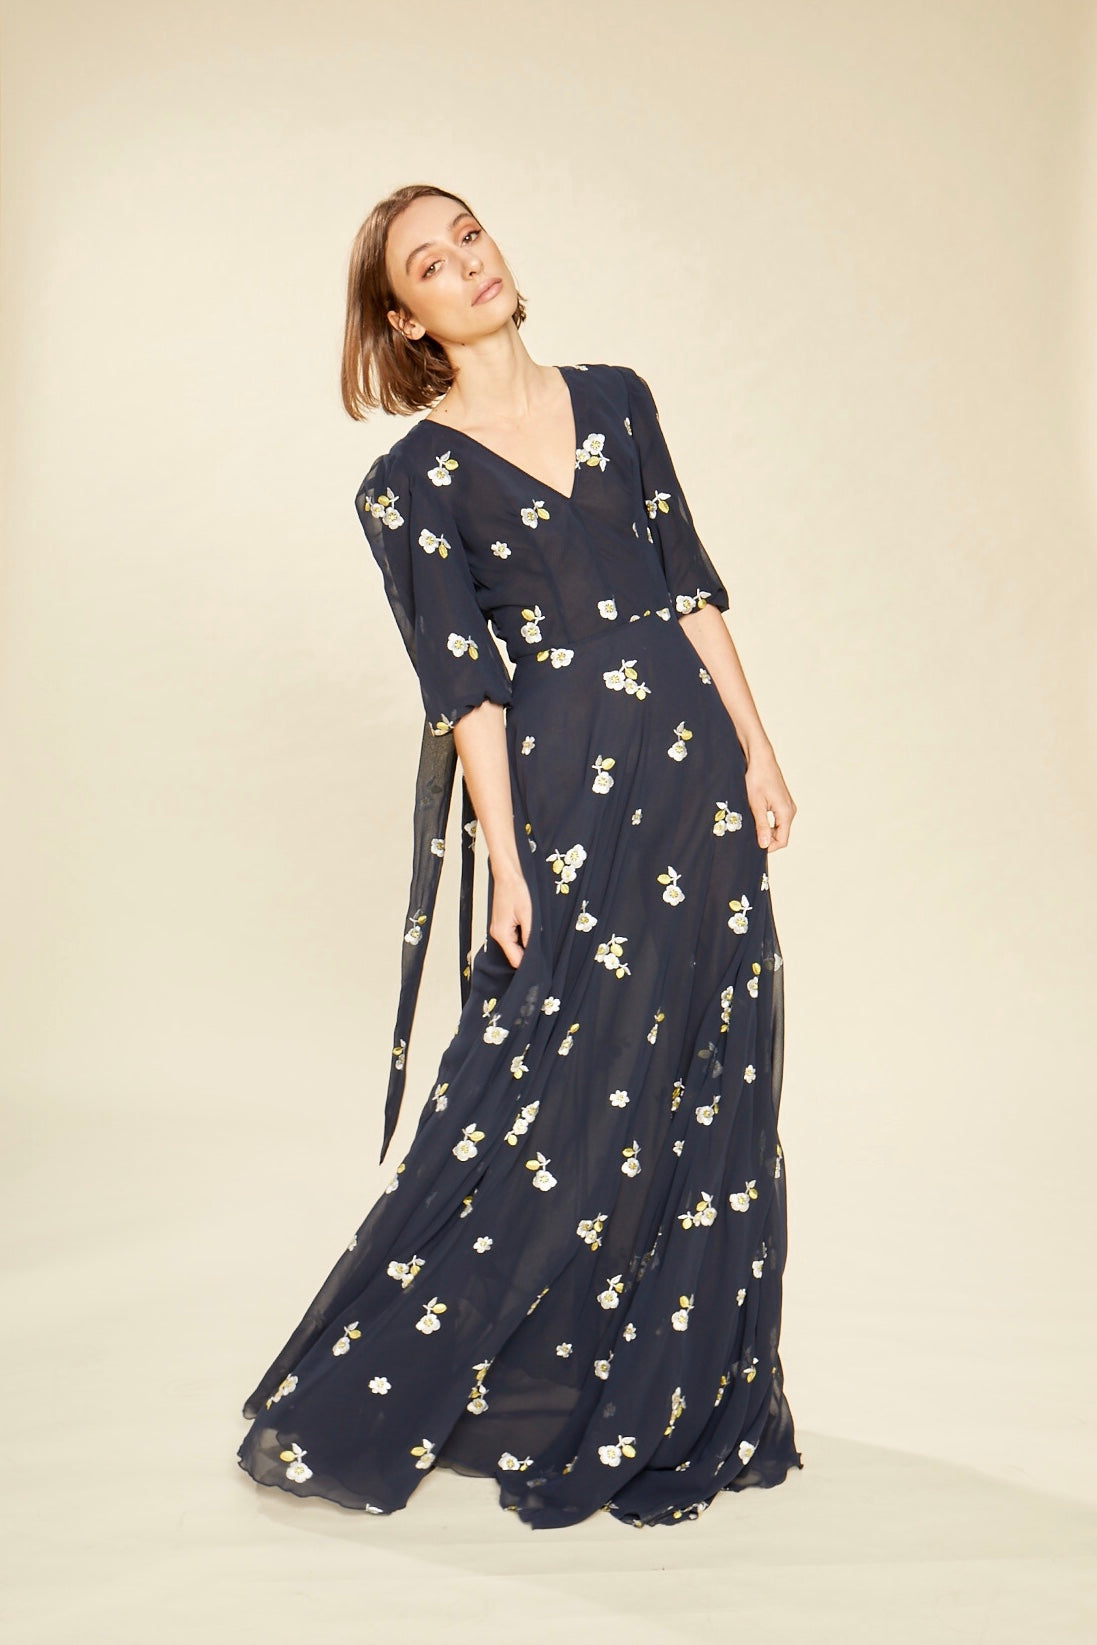 Marigold Floral Embroidered Navy Neck Tie Gown